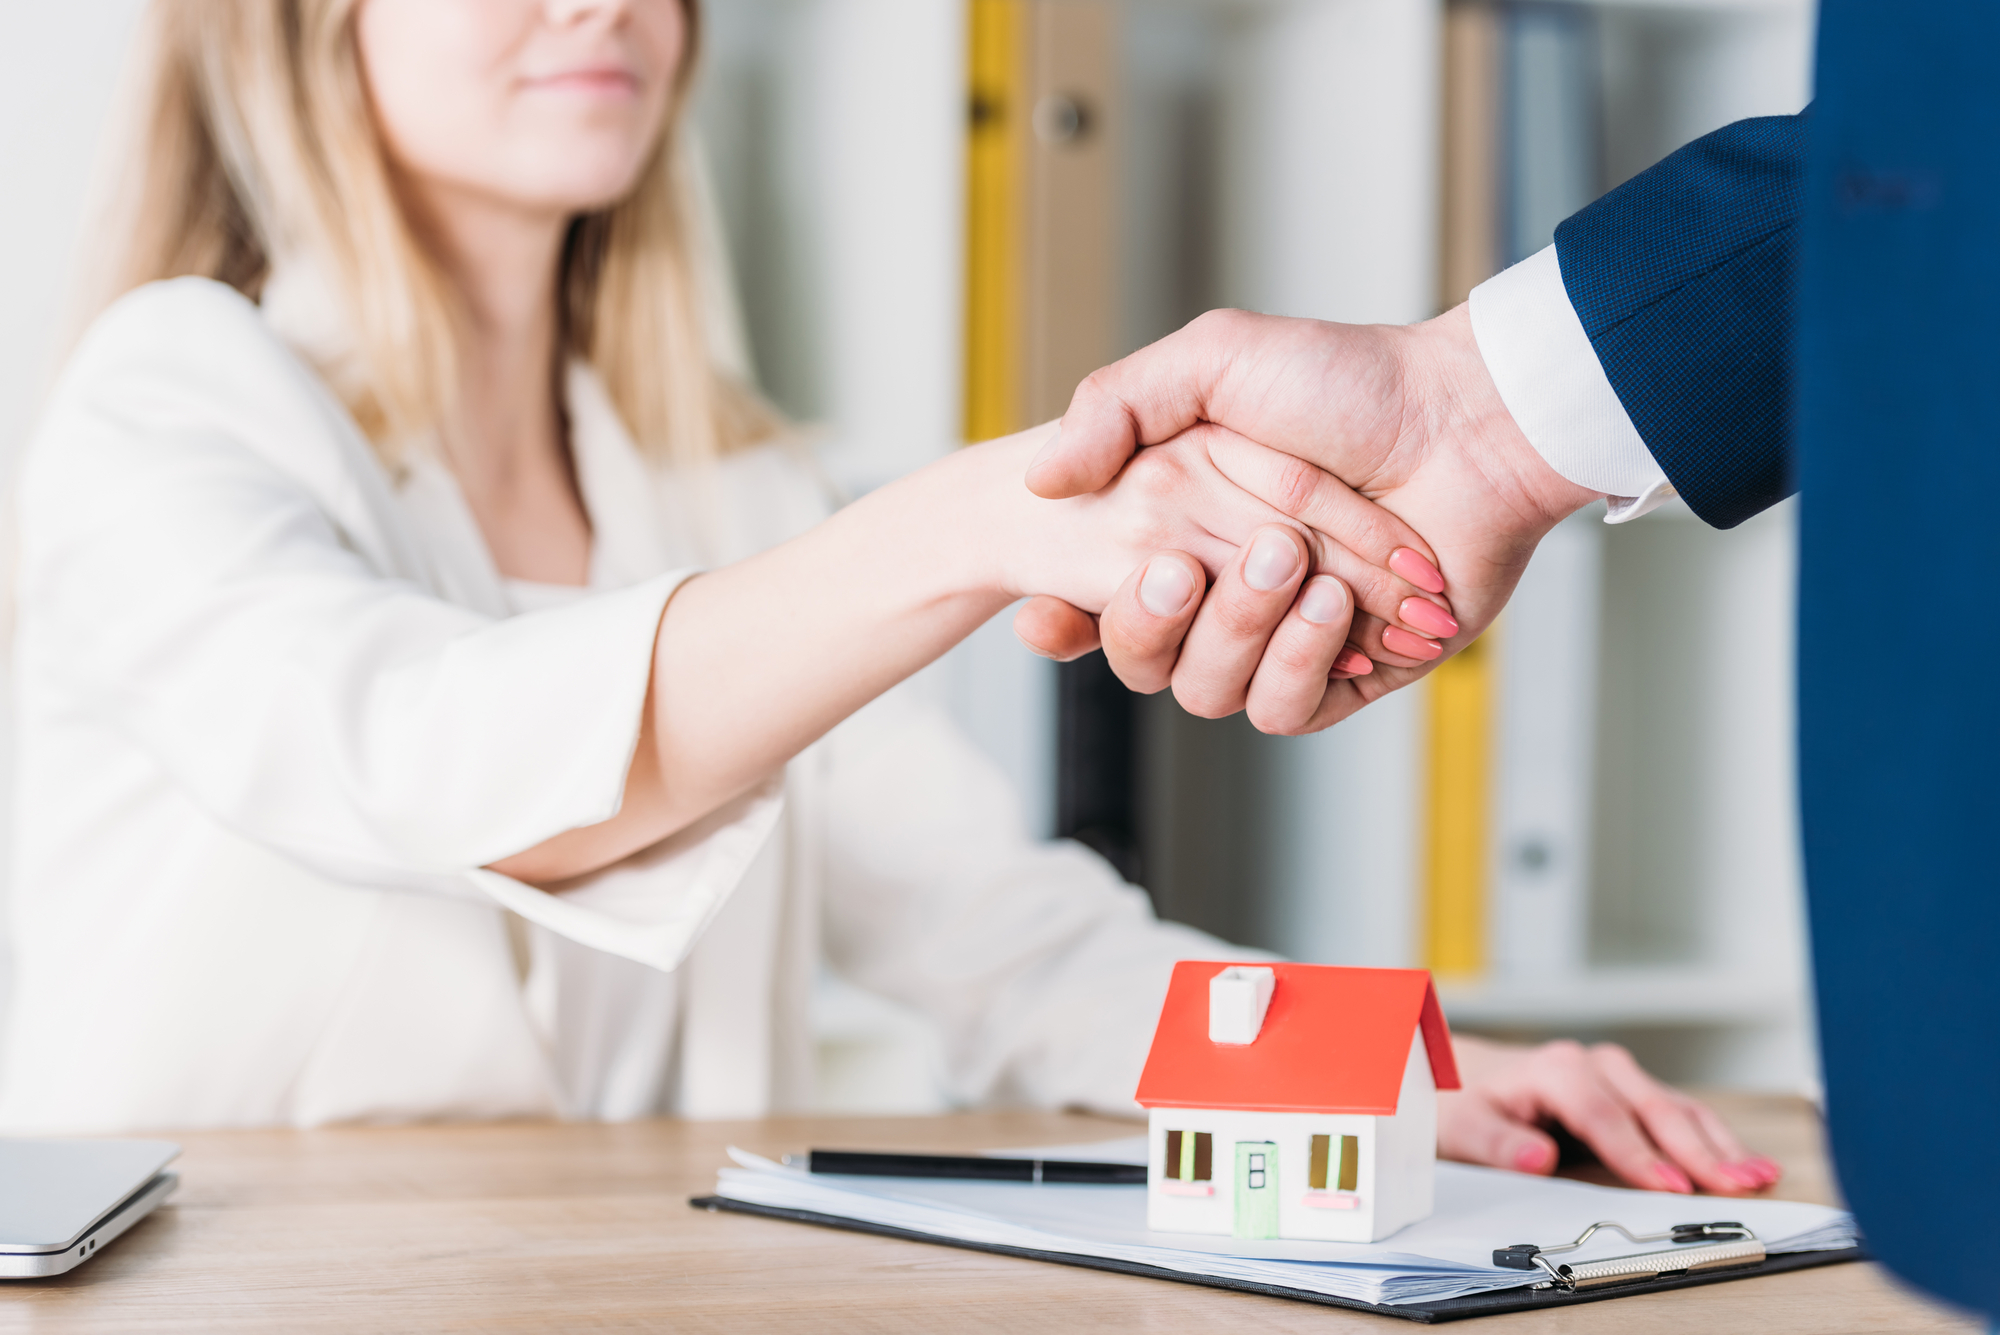 Partial view of smiling woman shaking hands with realtor near house model on table